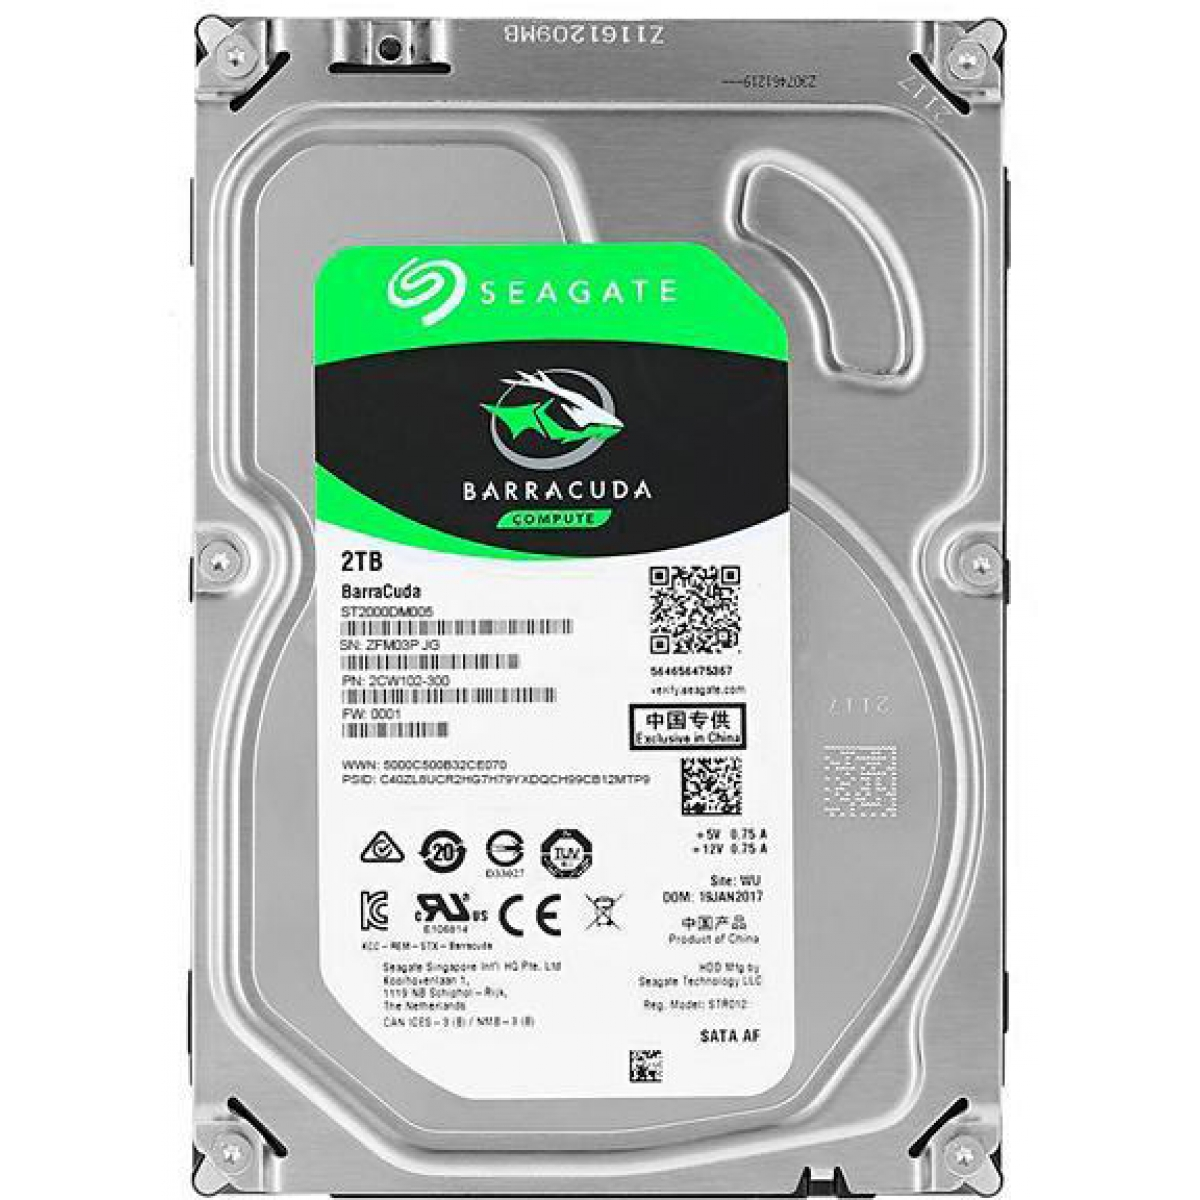 HD Seagate Barracuda 2TB, Sata III, 5400RPM, 256MB, ST2000DM005